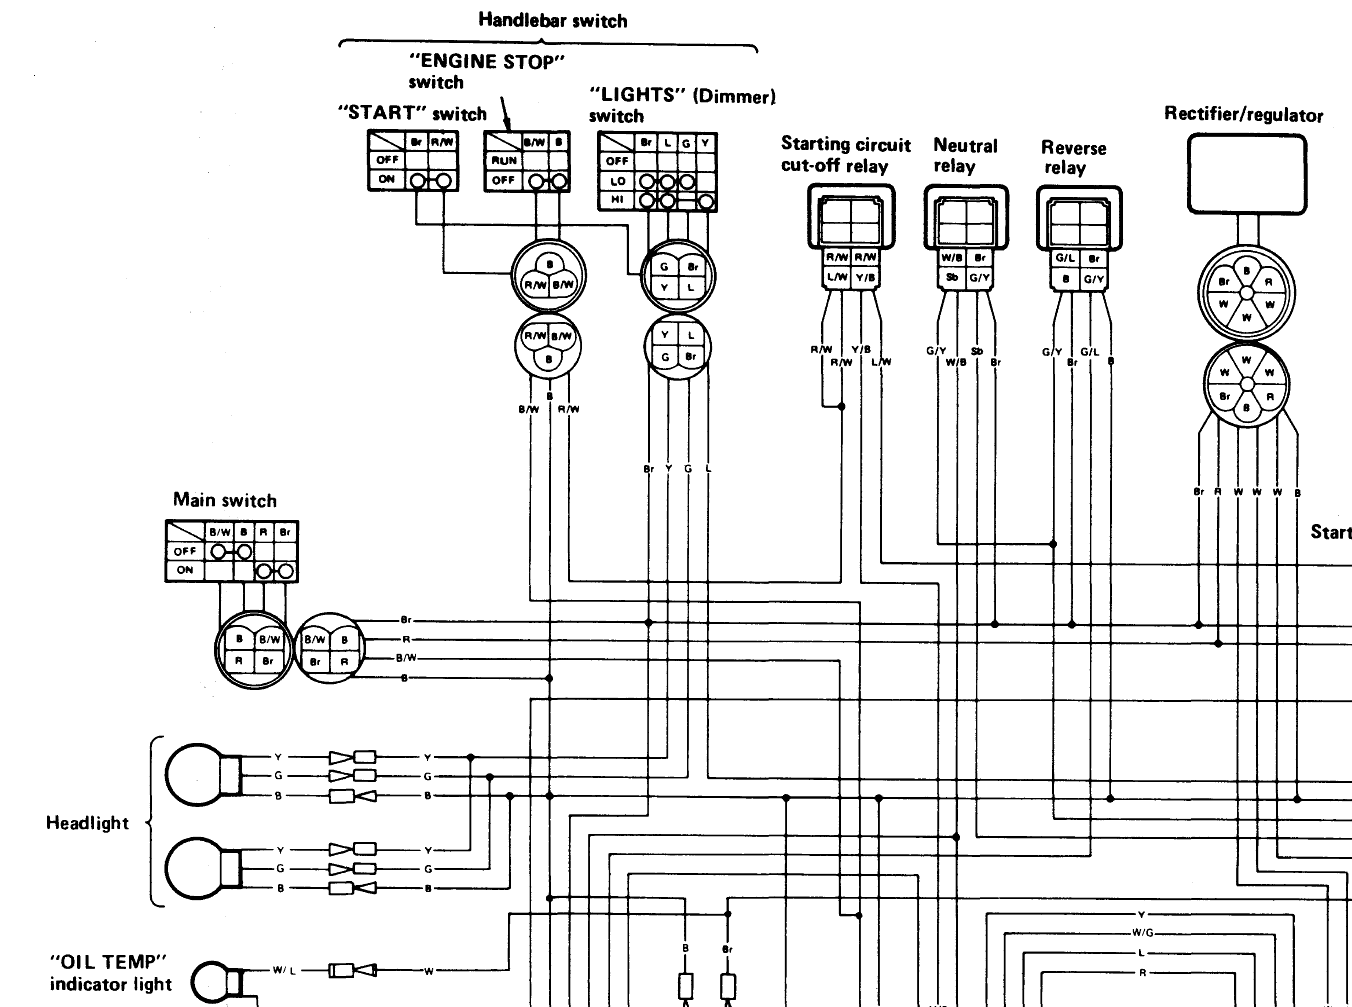 Yamaha 350 Warrior Wiring Diagram